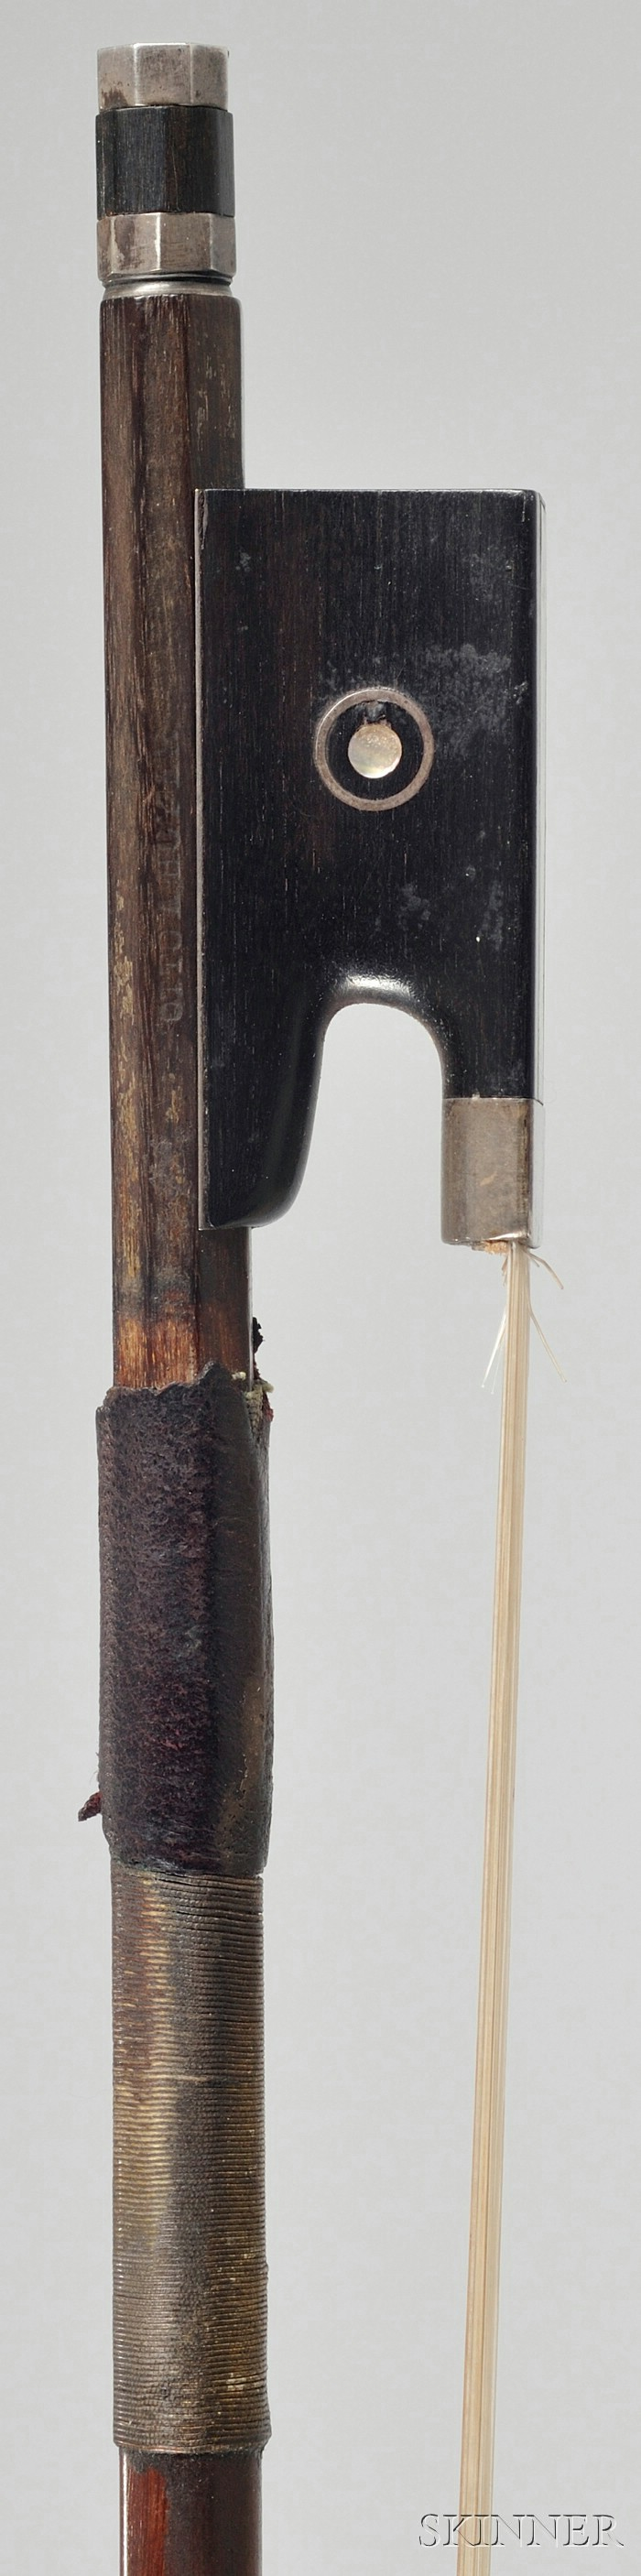 Silver Mounted Violin Bow, Otto Hoyer Workshop